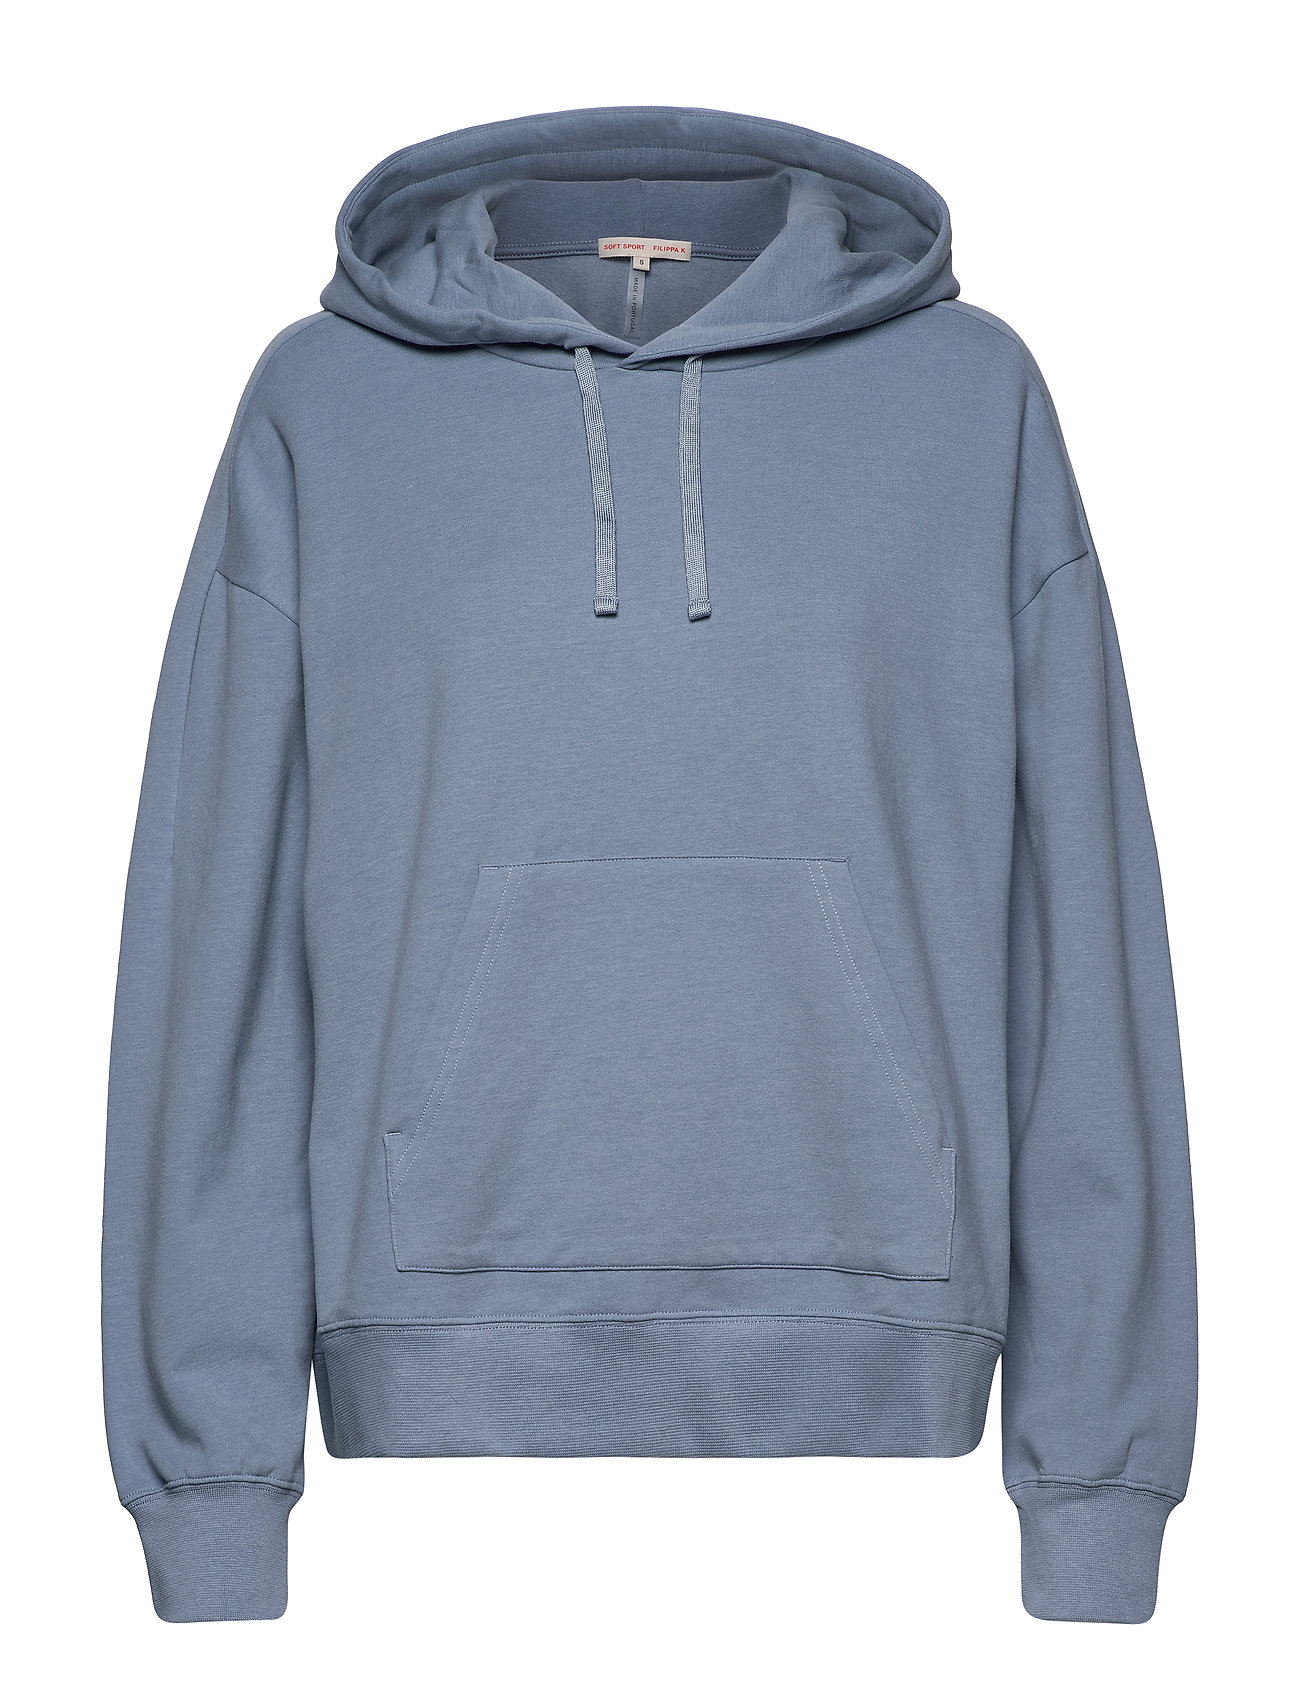 Filippa K Soft Sport Hooded Sweatshirt - MISTY BLUE